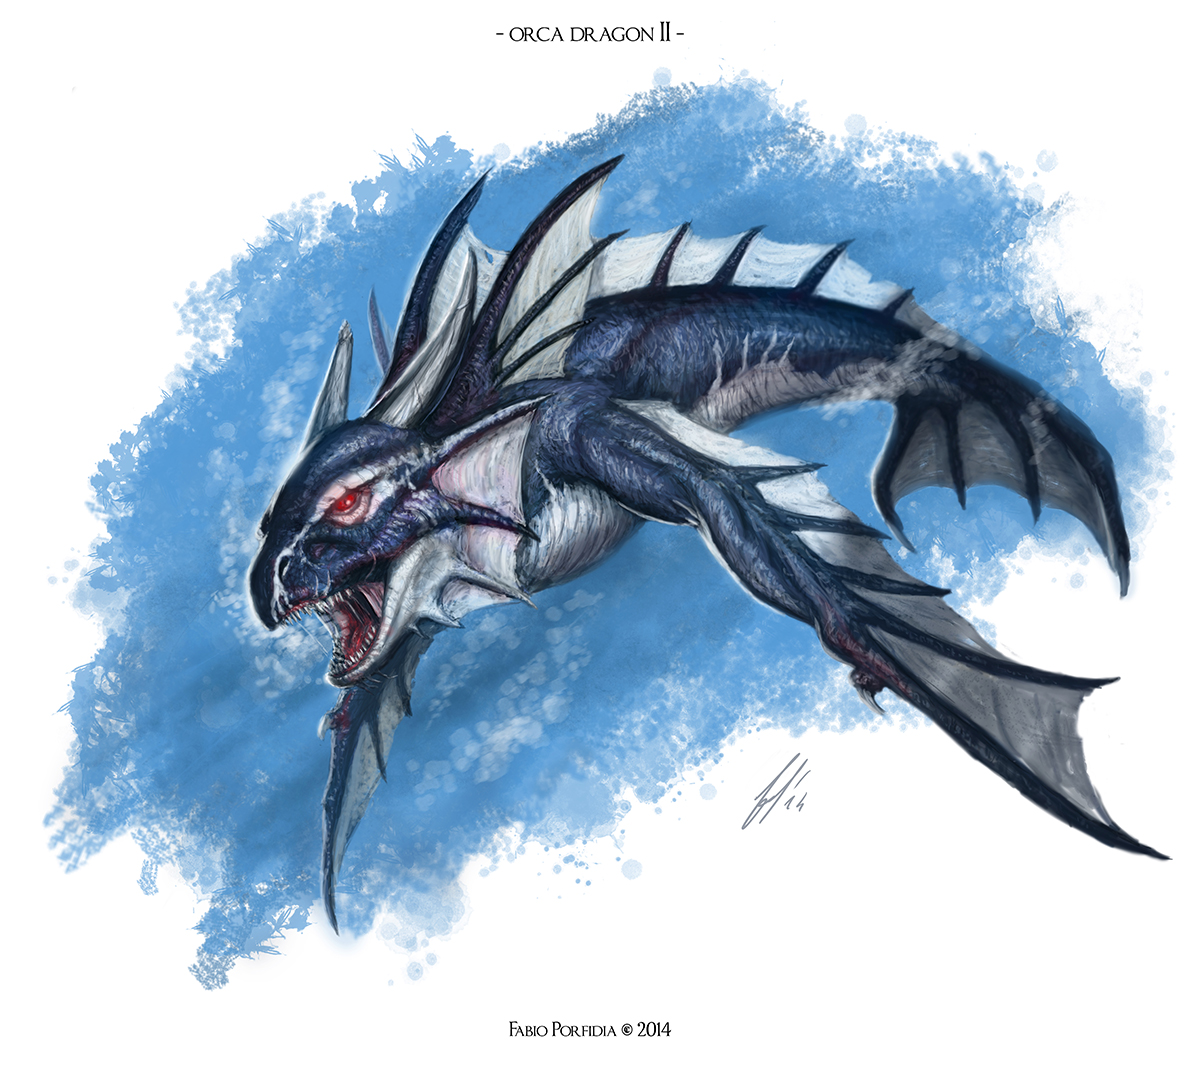 Orca Dragon II